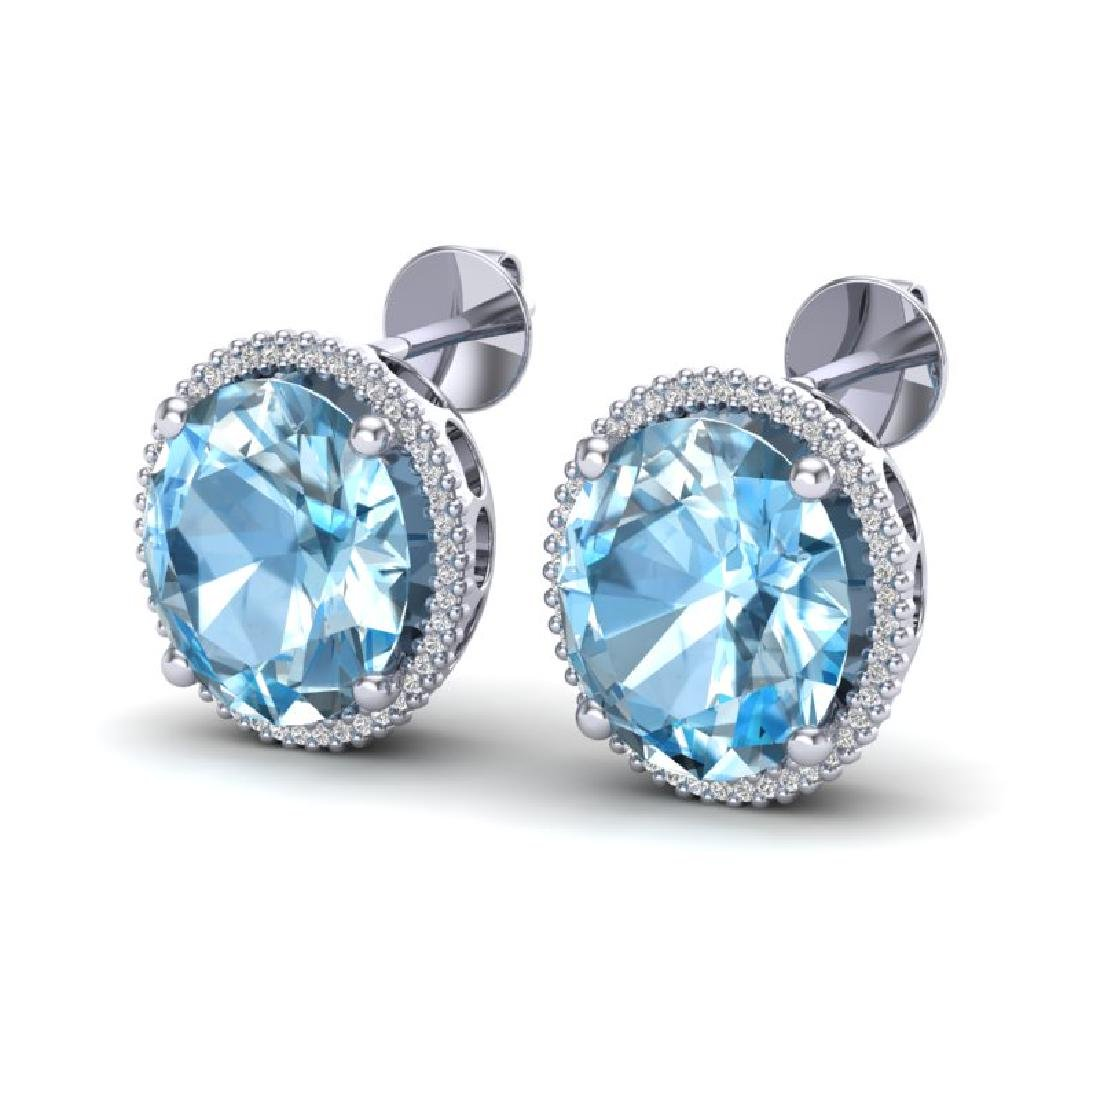 25 CTW Sky Blue Topaz & Micro VS/SI Diamond Halo